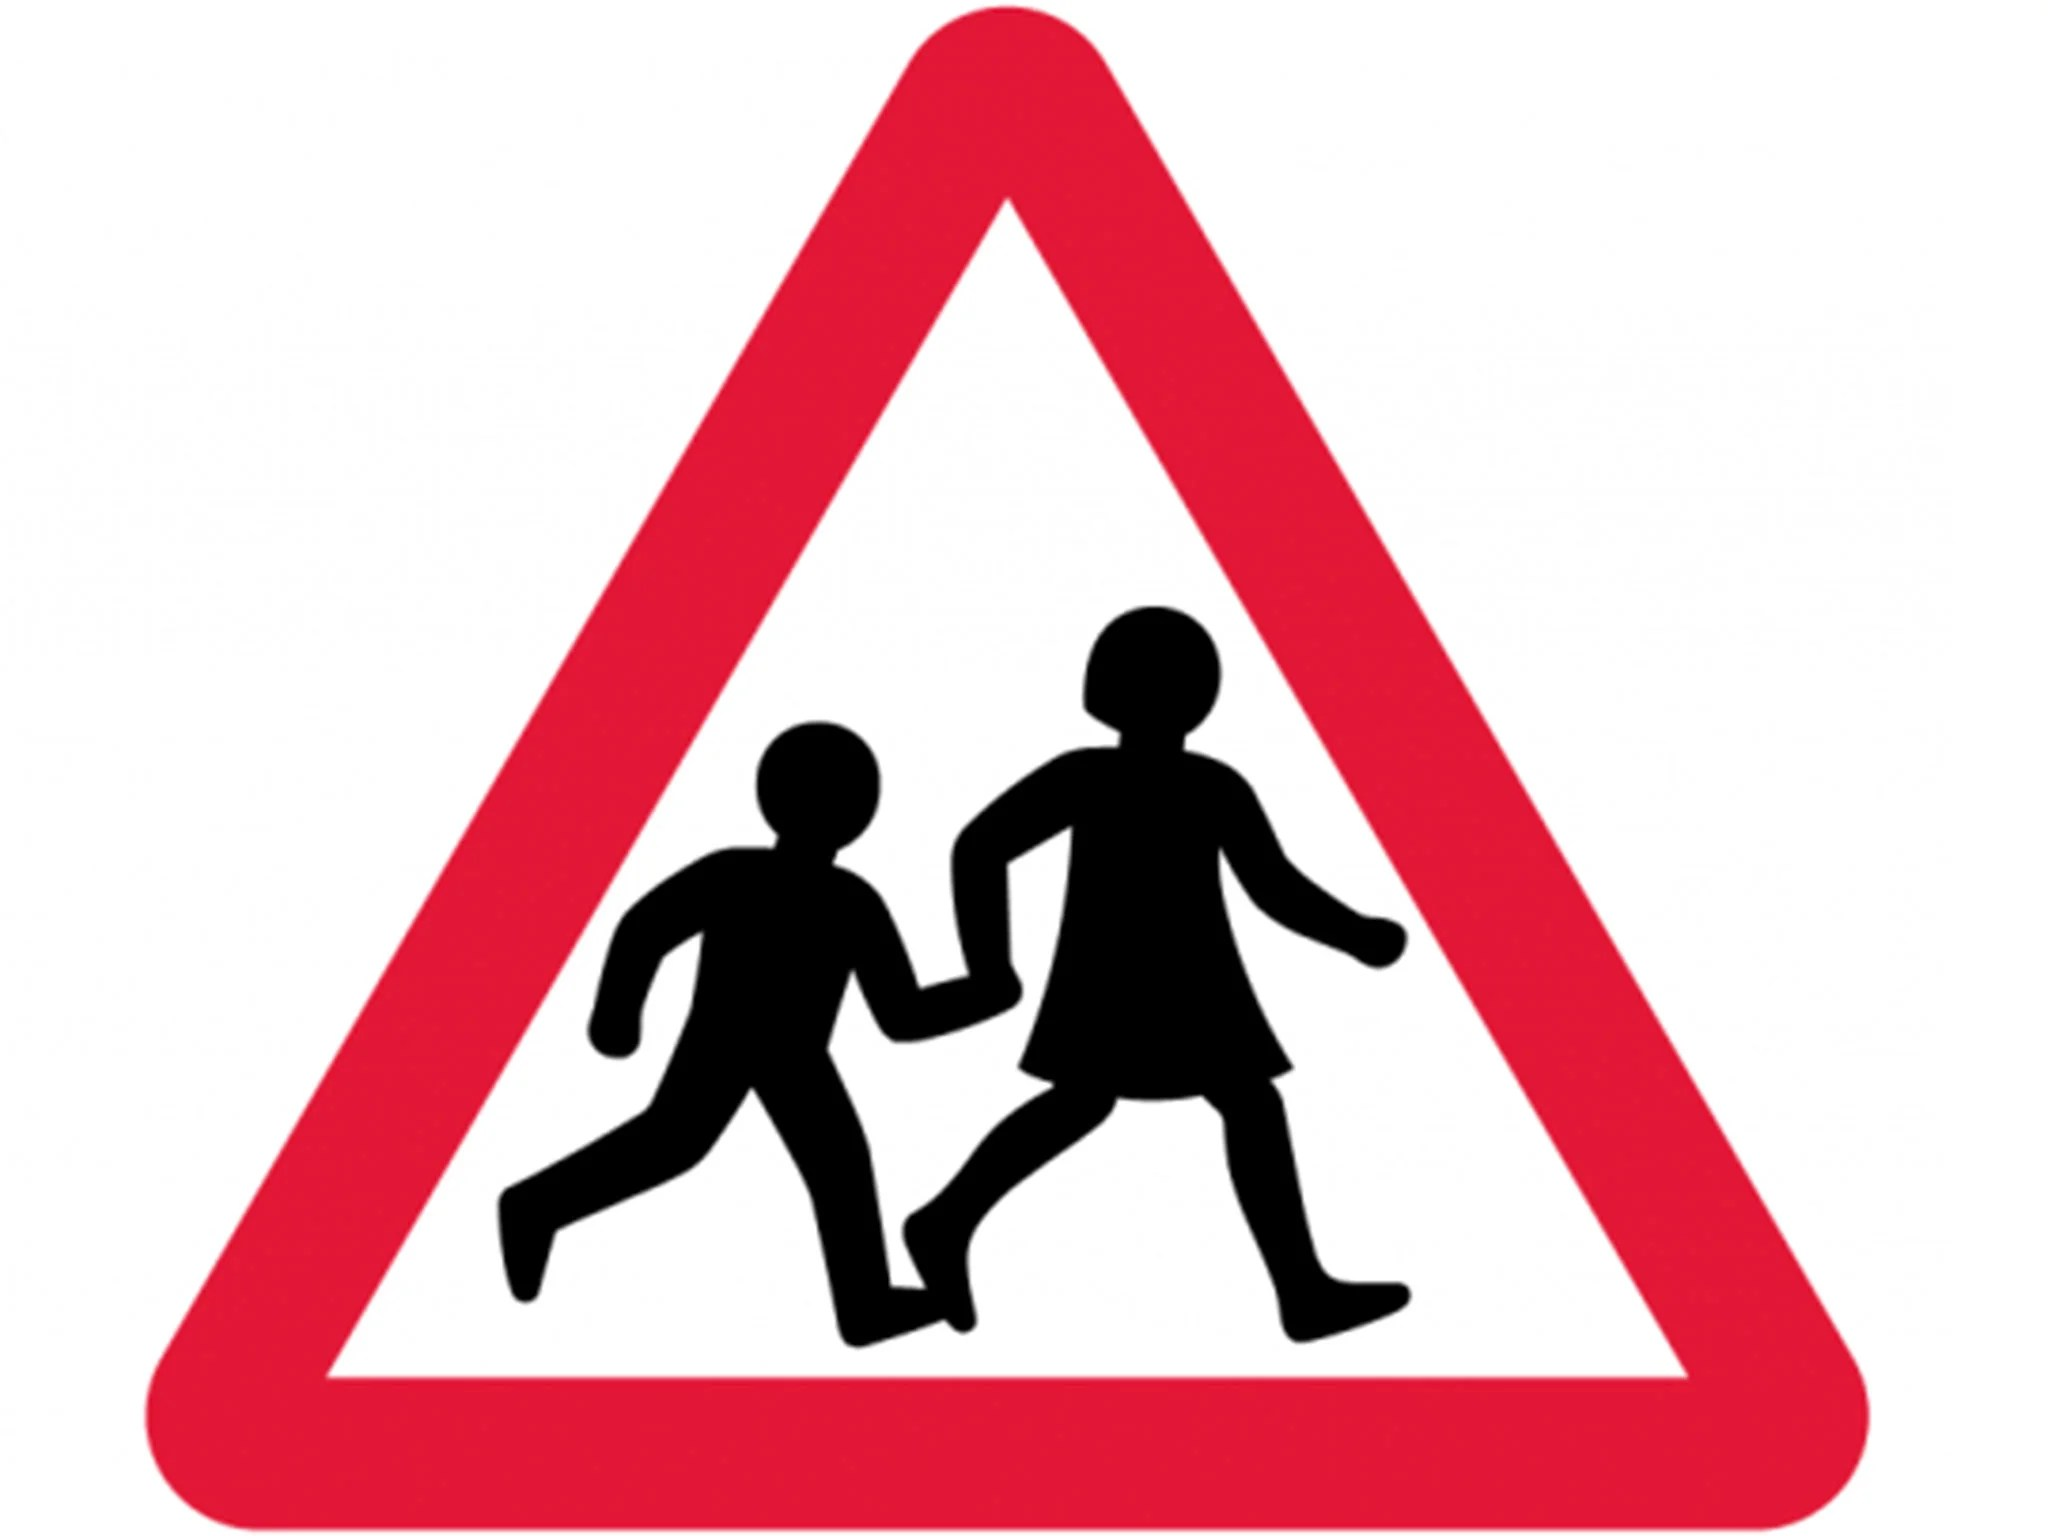 Iconic British Road Sign Of Two Schoolchildren Crossing